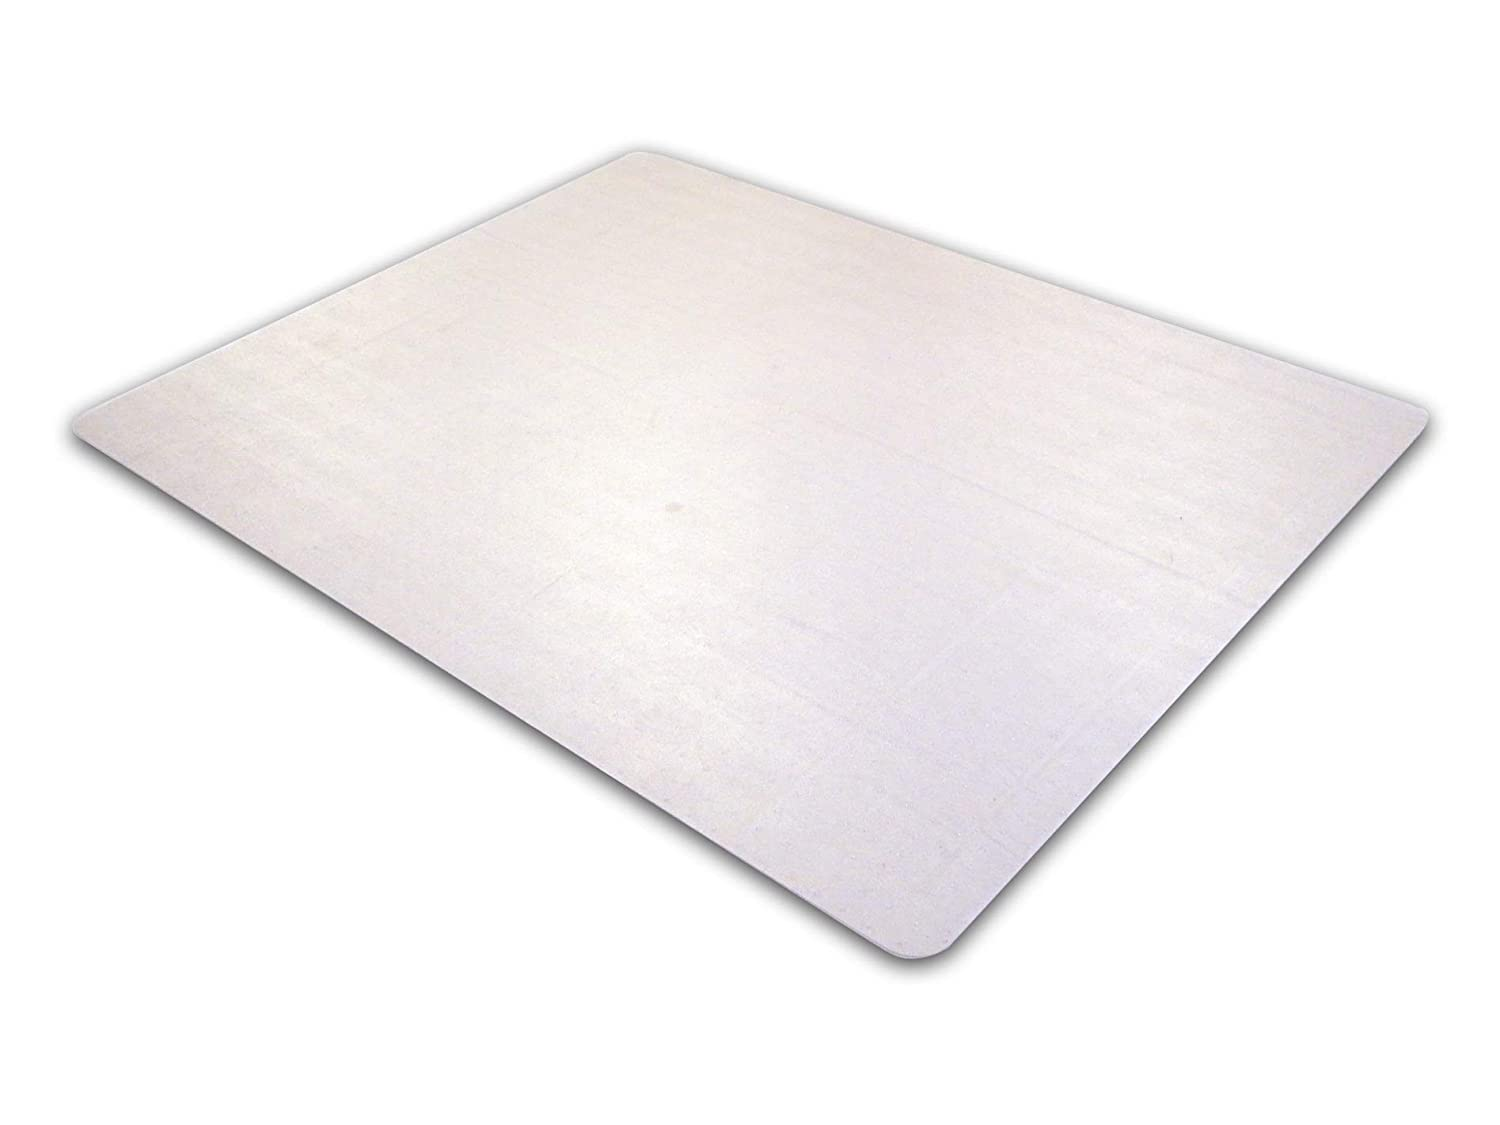 """Floortex Cleartex Advantagemat, Chairmat for Low Pile Carpets (1/4"""" or less), Phthalate-Free PVC, Rectangular, Size 36"""" x 48"""", Clear (FRPF119225EV)"""